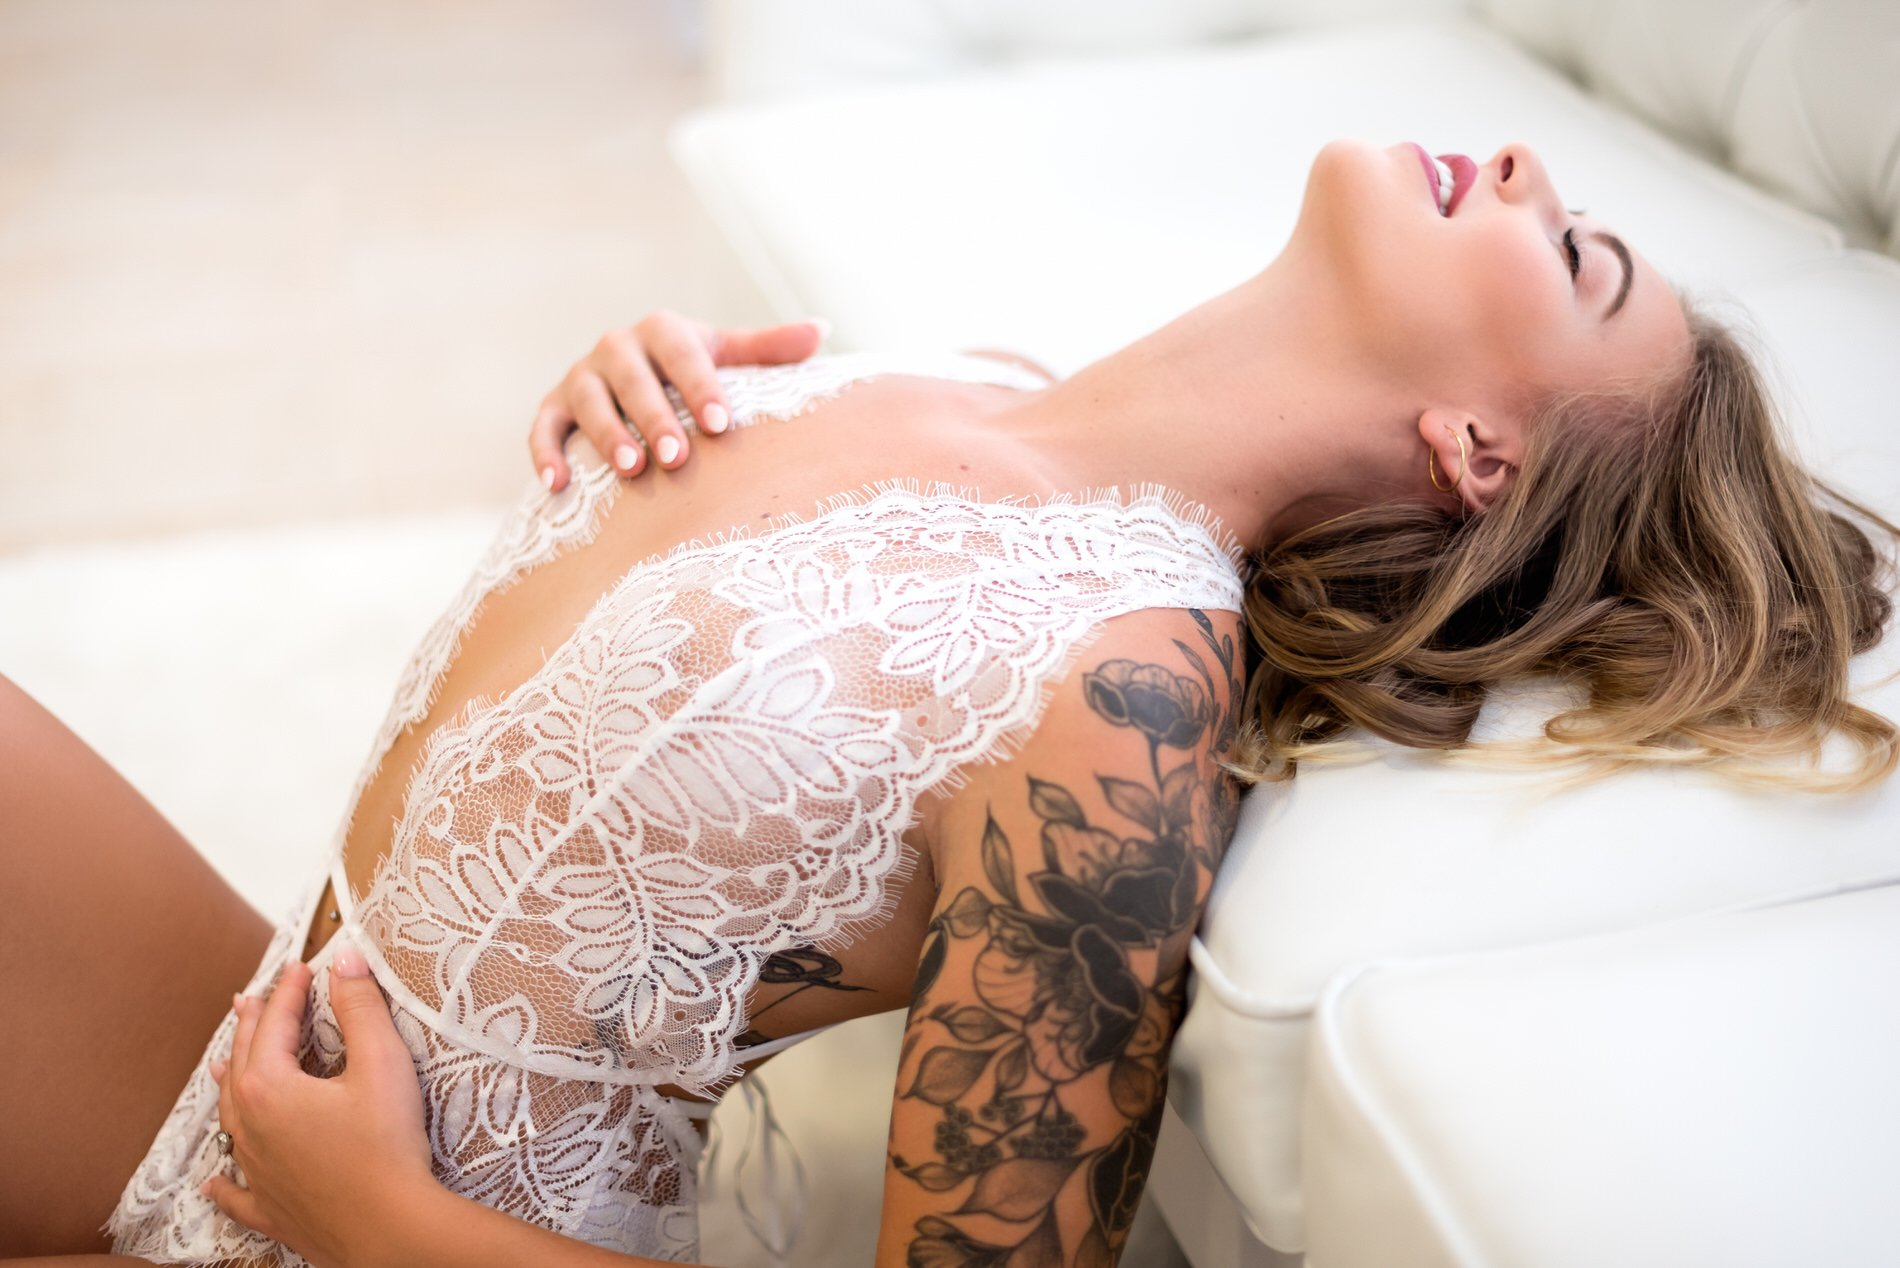 boudoir photography helps clients feel comfortable in their own skin at water bear photography is gainesville florida